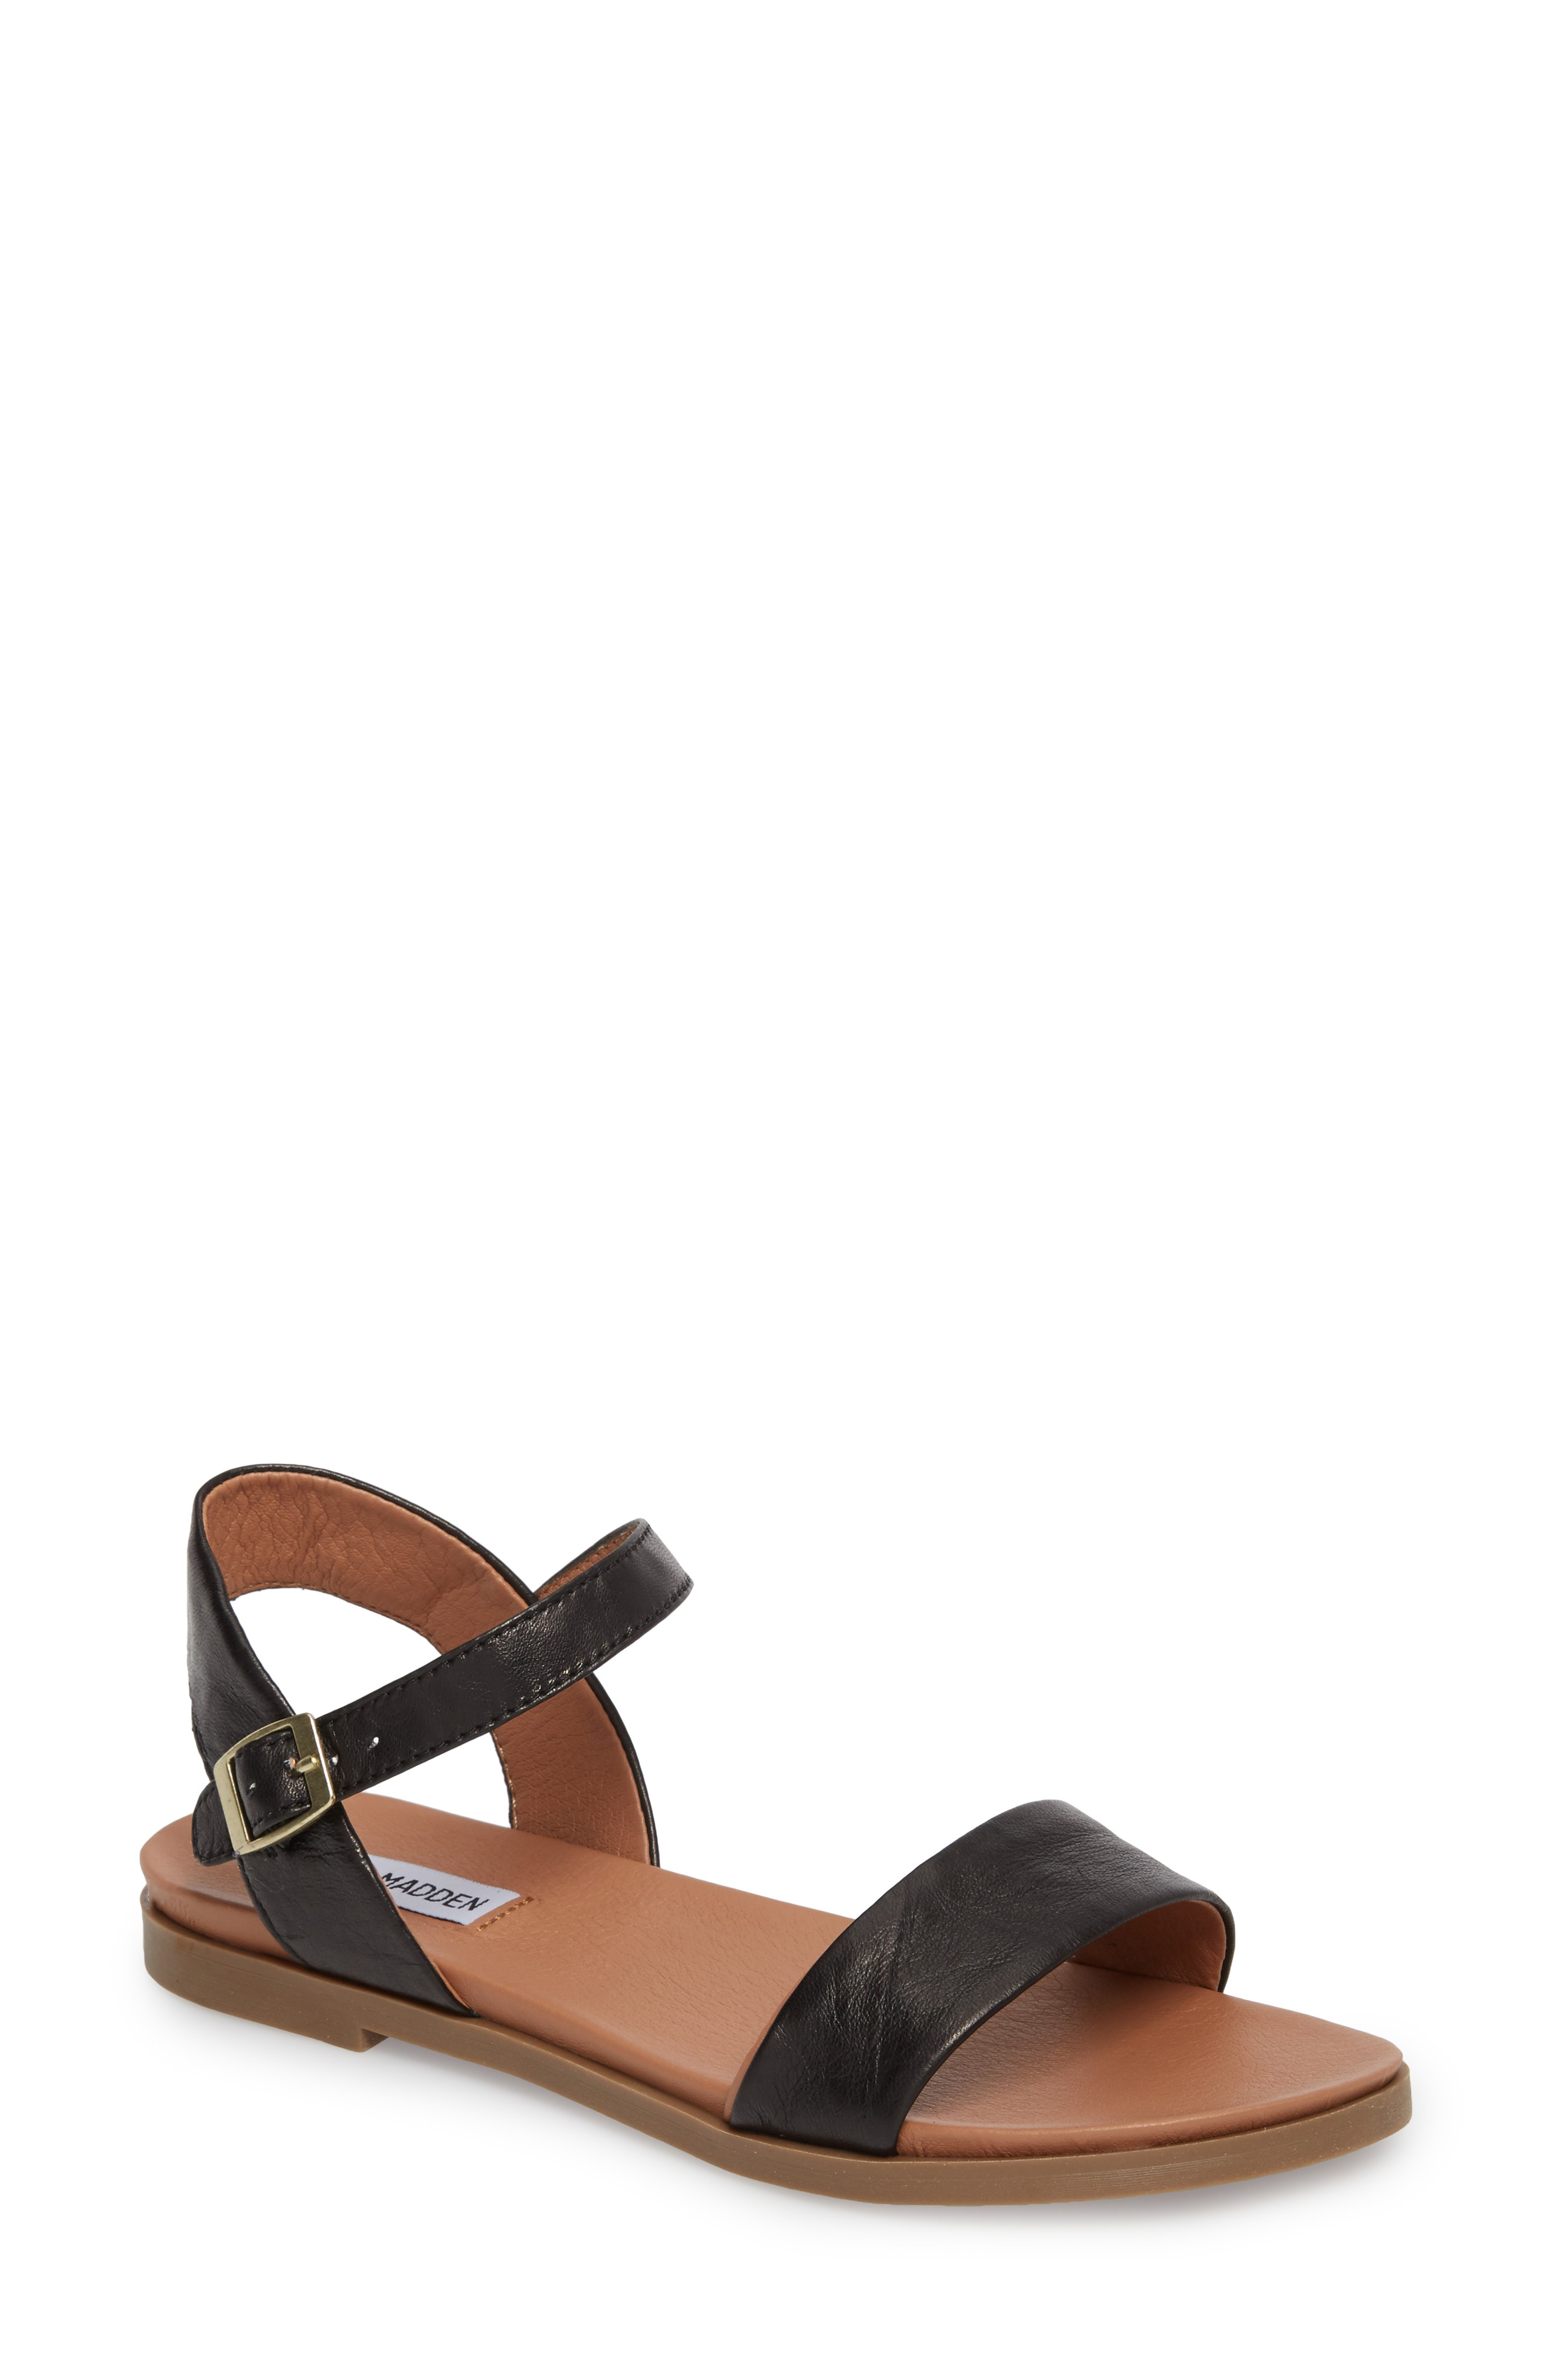 eb580a85170 Dina Sandal in Black Leather